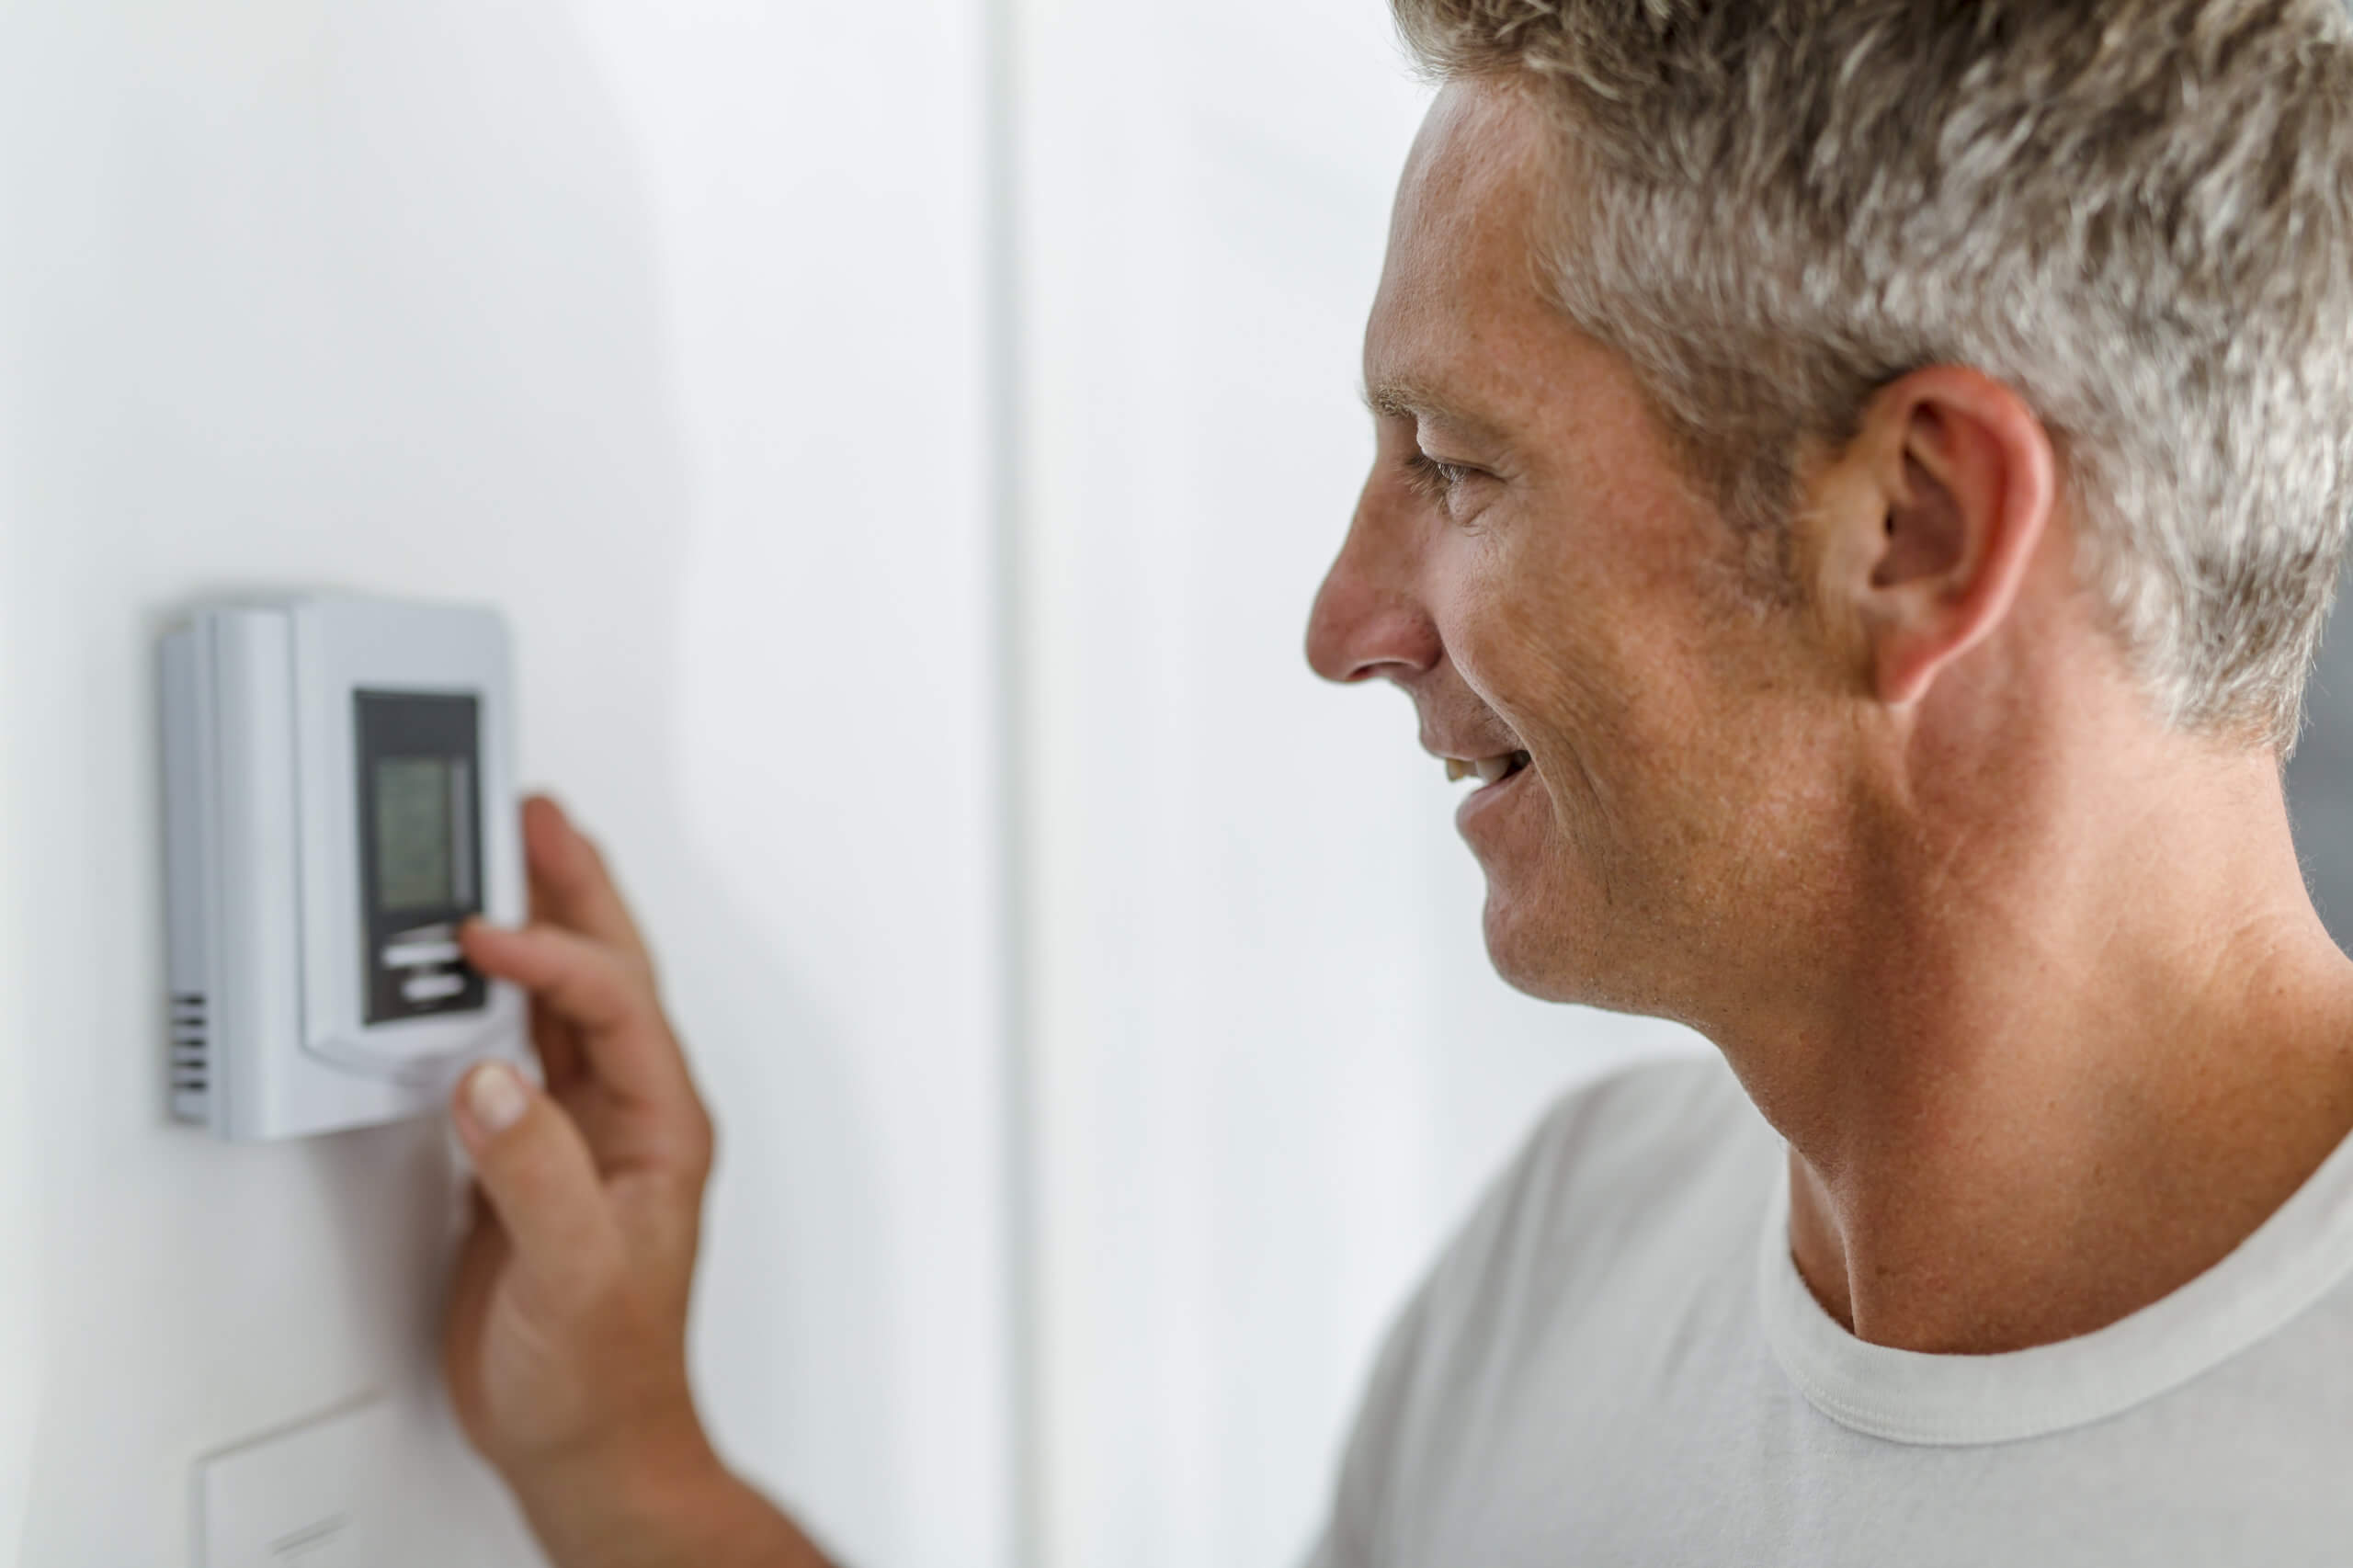 programmable thermostat by MillTown Plumbing